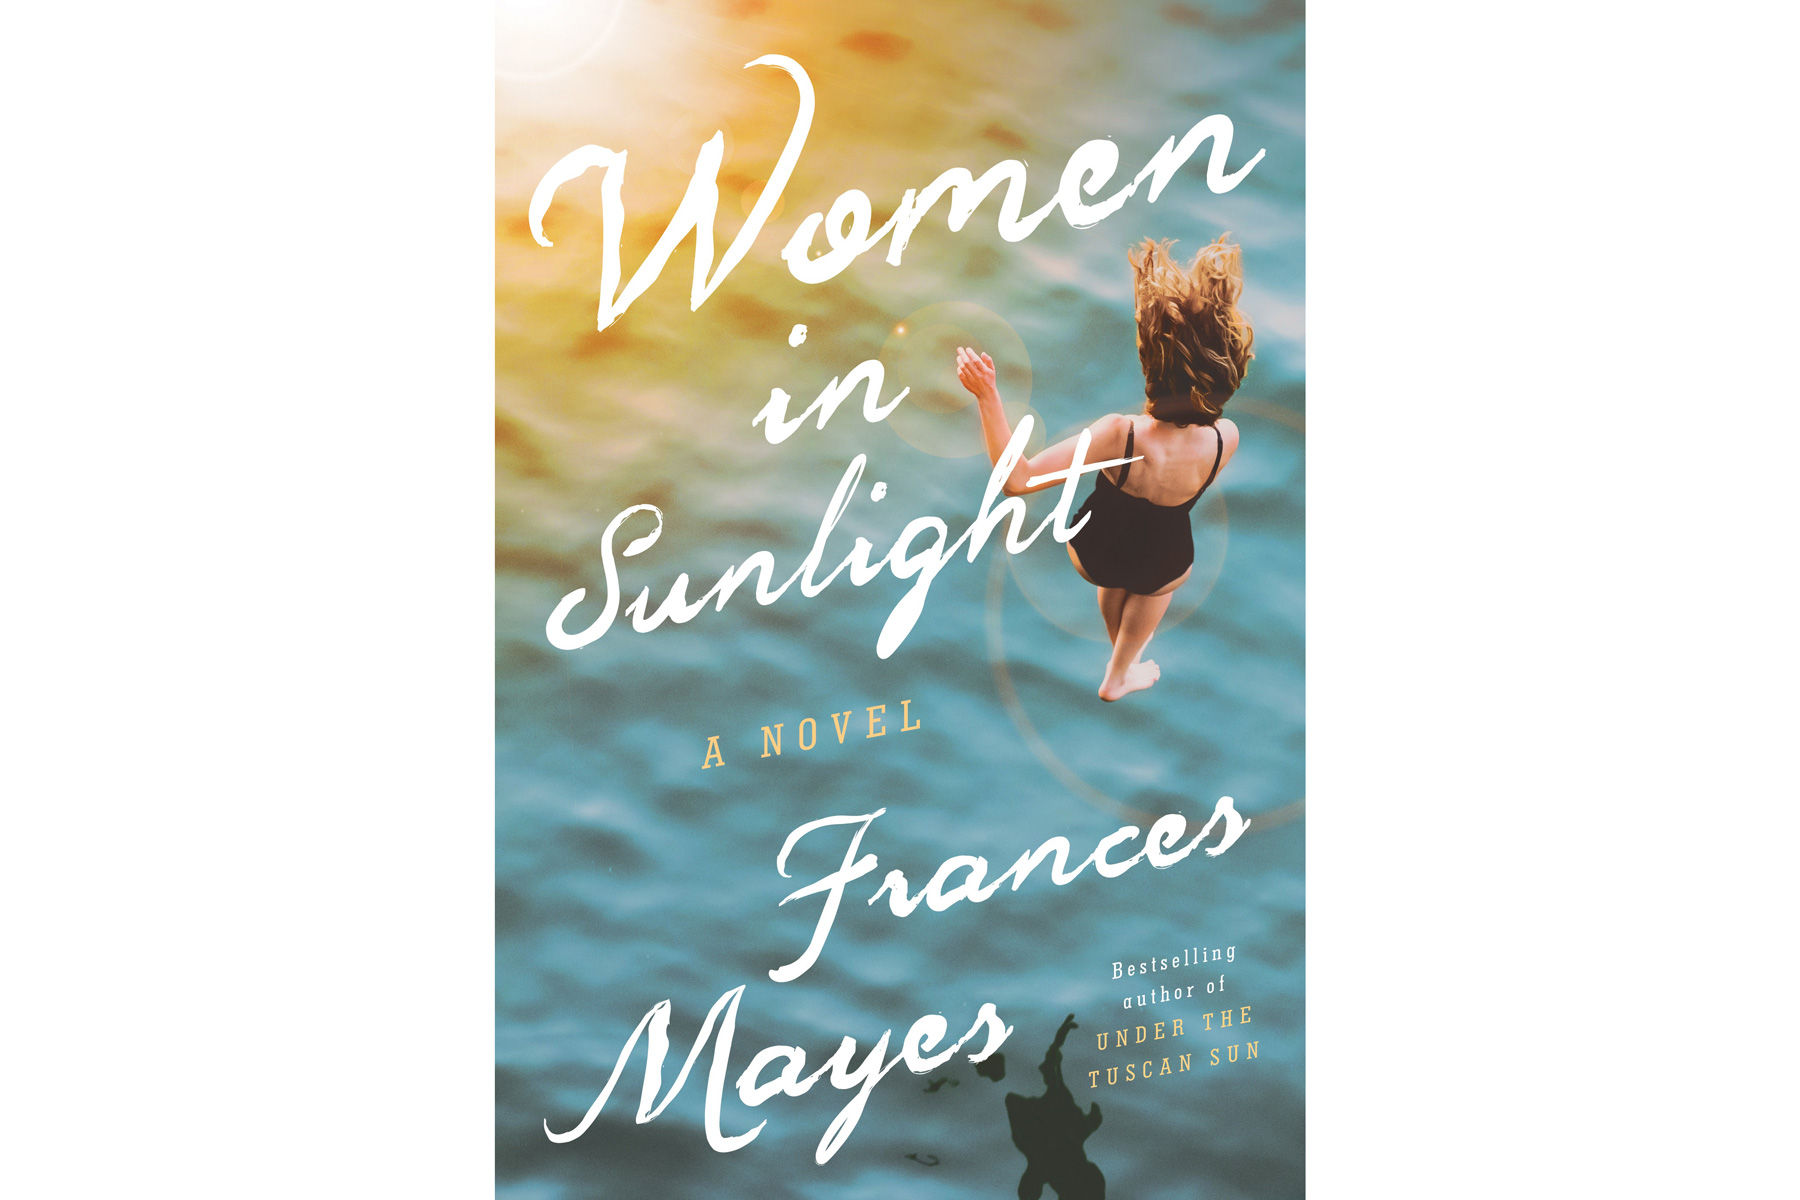 33 mothers day gifts for book lovers real simple women in sunlight by frances mayes forumfinder Image collections